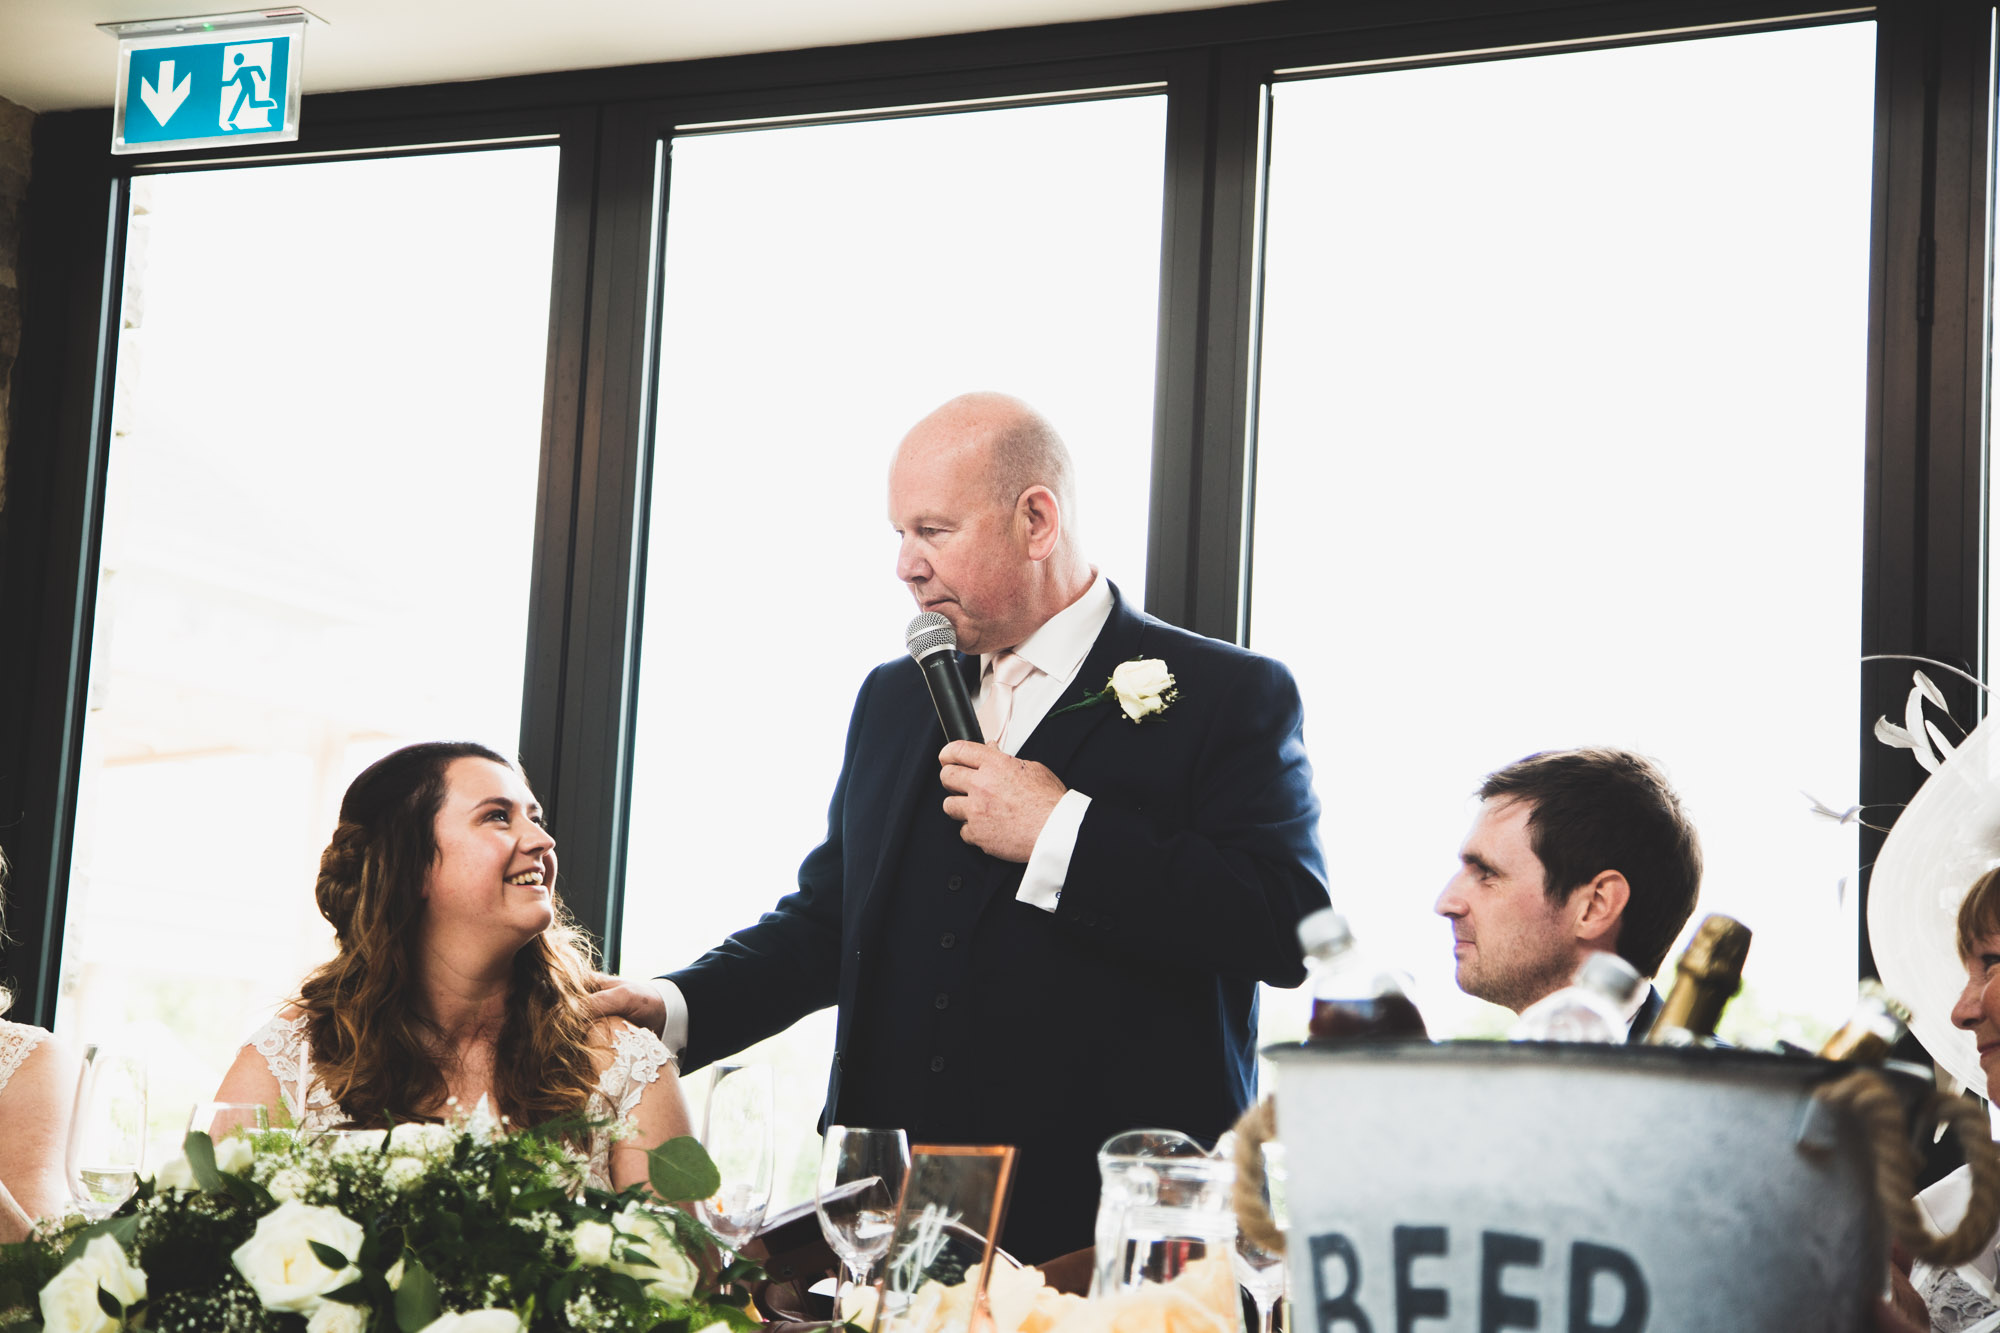 Father of the Bride giving his speech